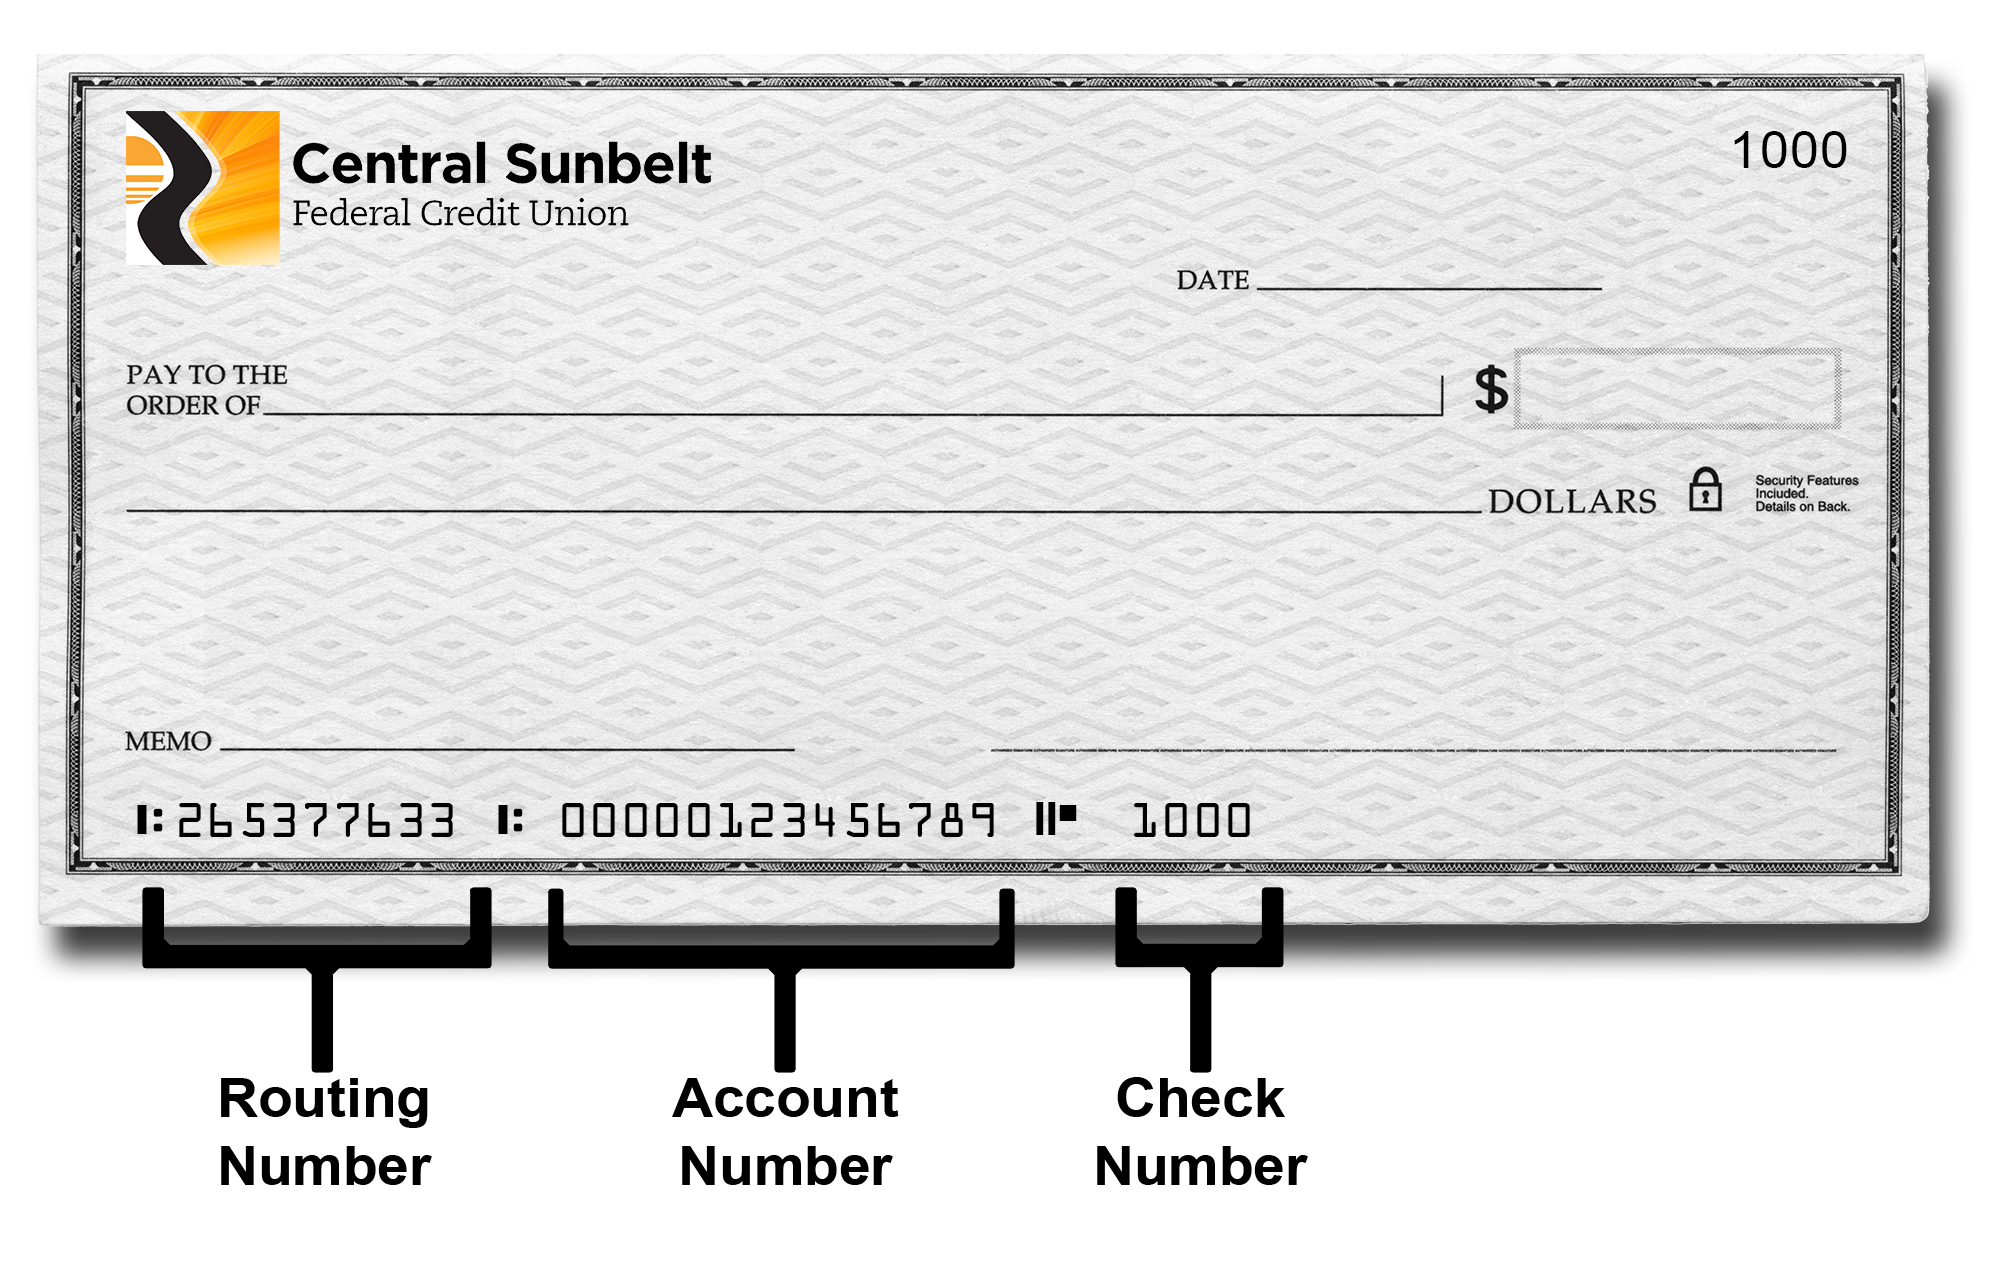 central sunbelt routing number